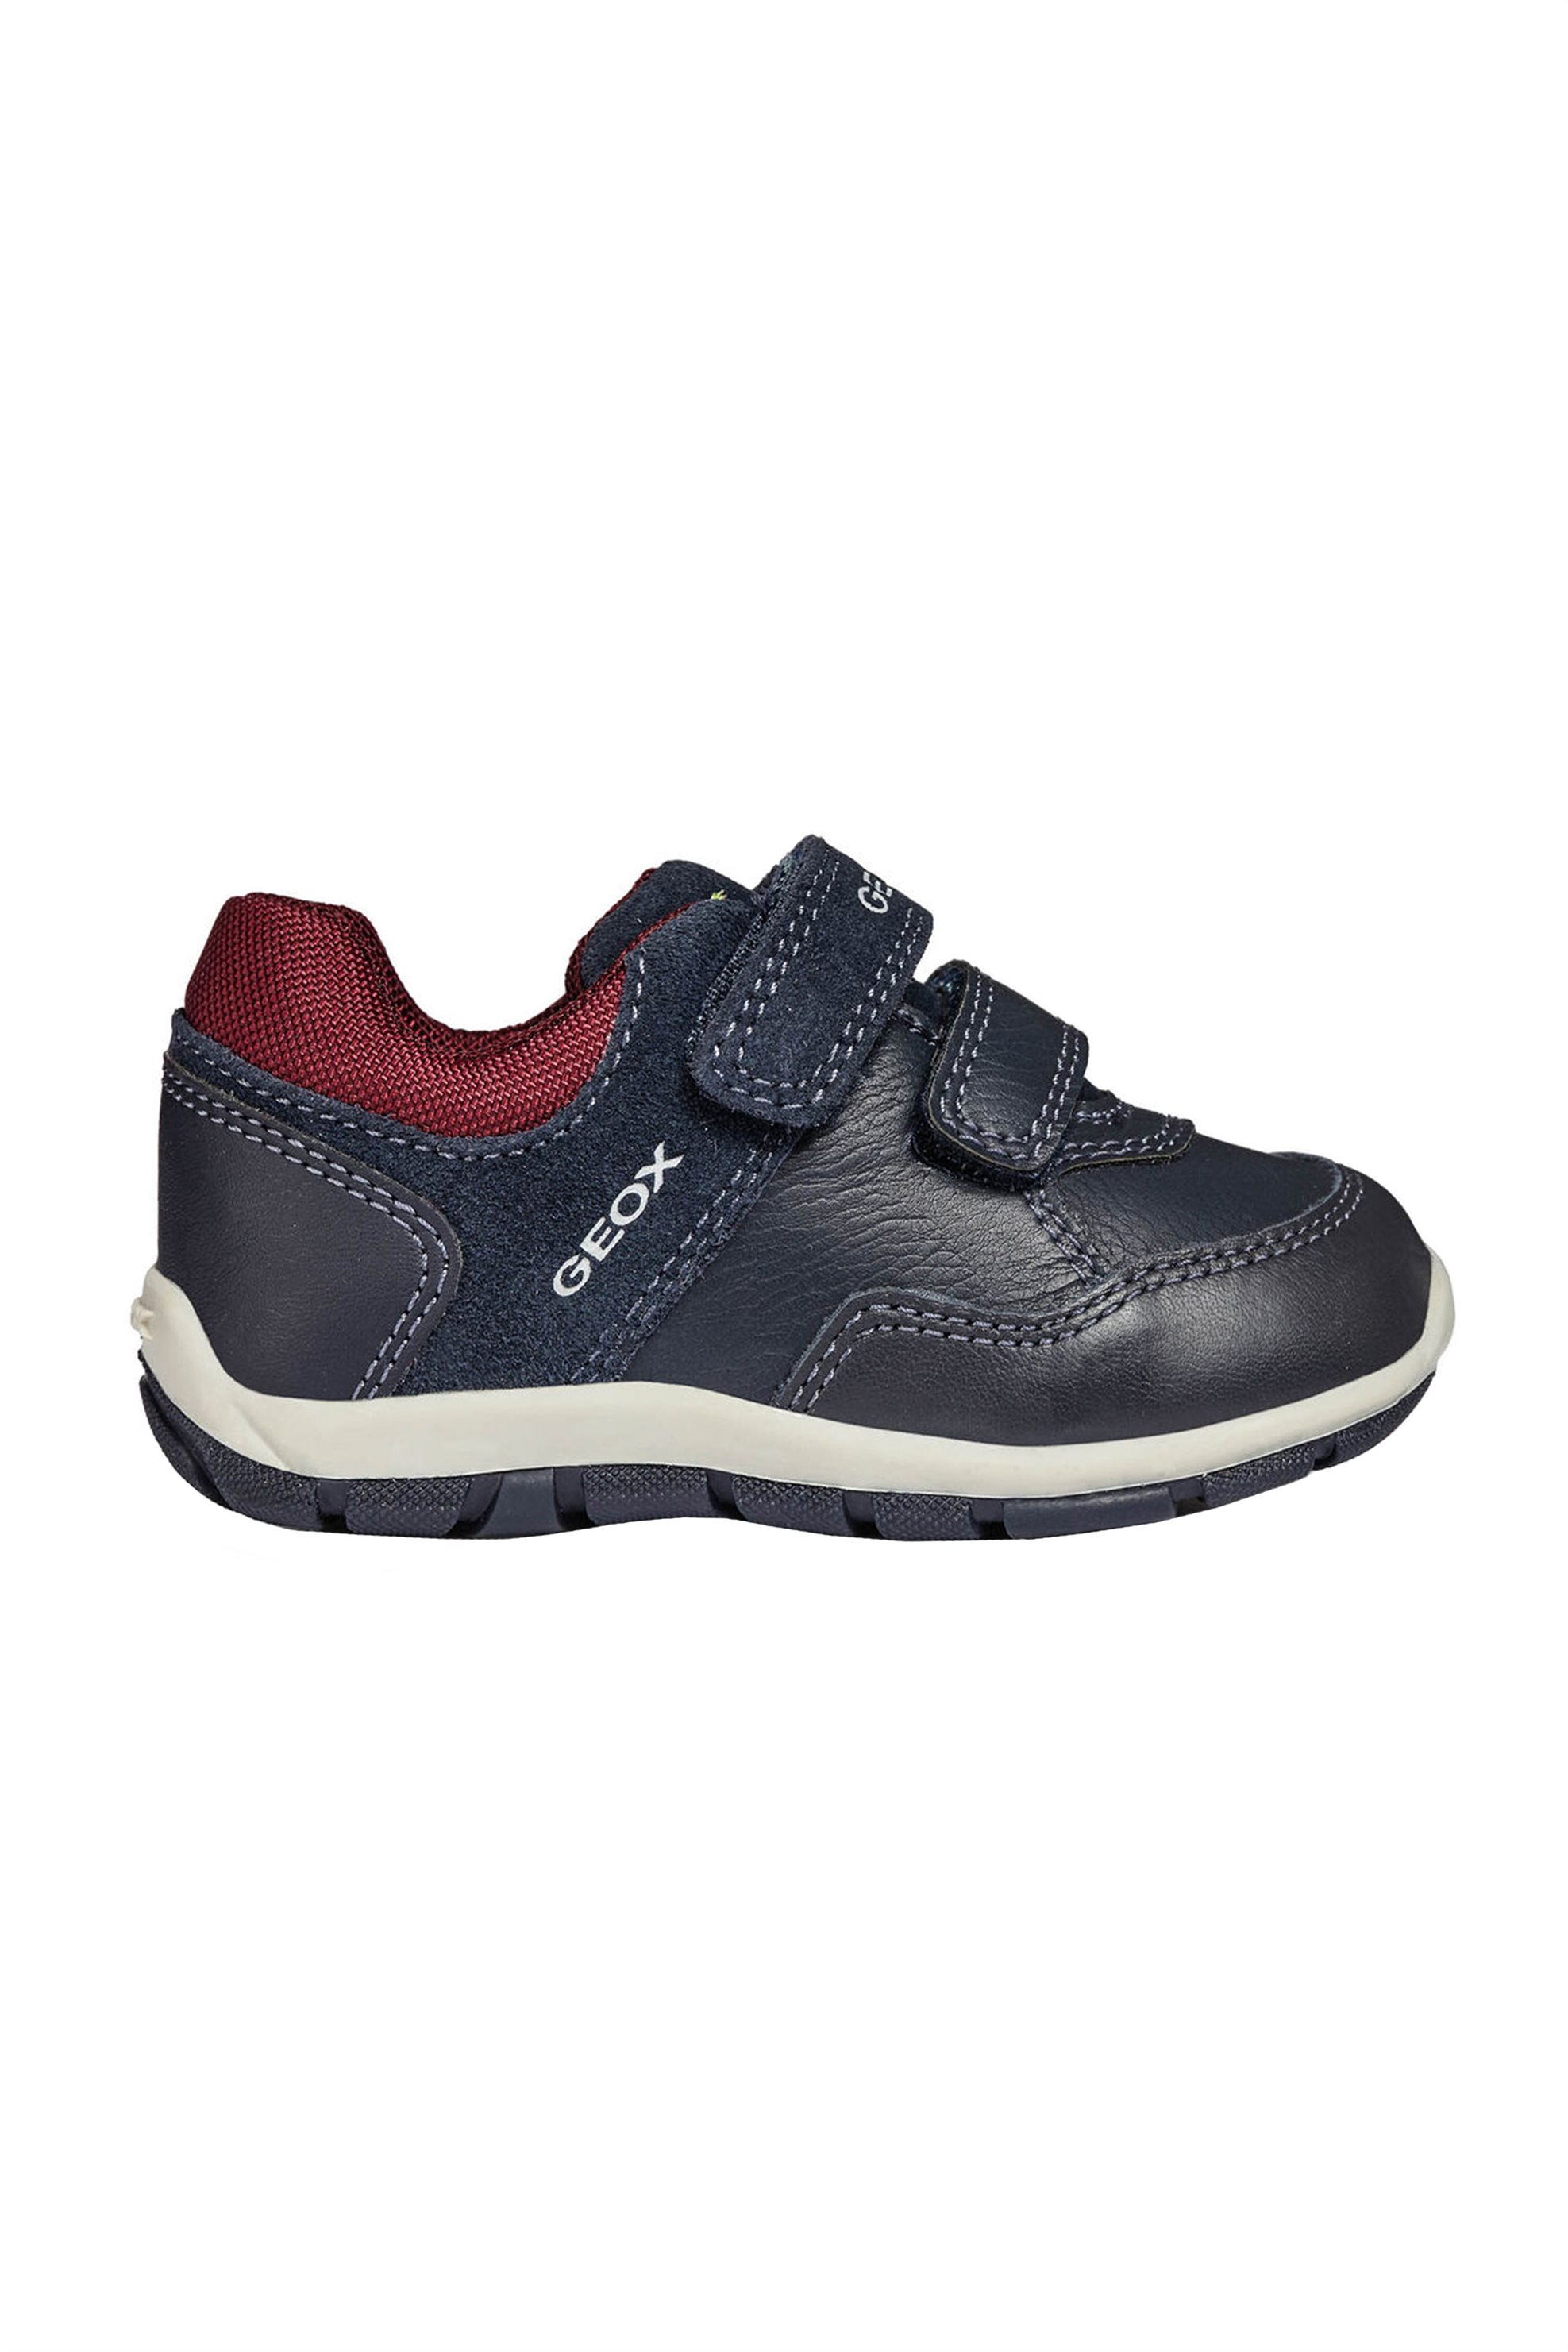 -30% Notos Geox παιδικά sneakers Baby Shaax – B8432A – Μπλε Σκούρο d2d0a712773